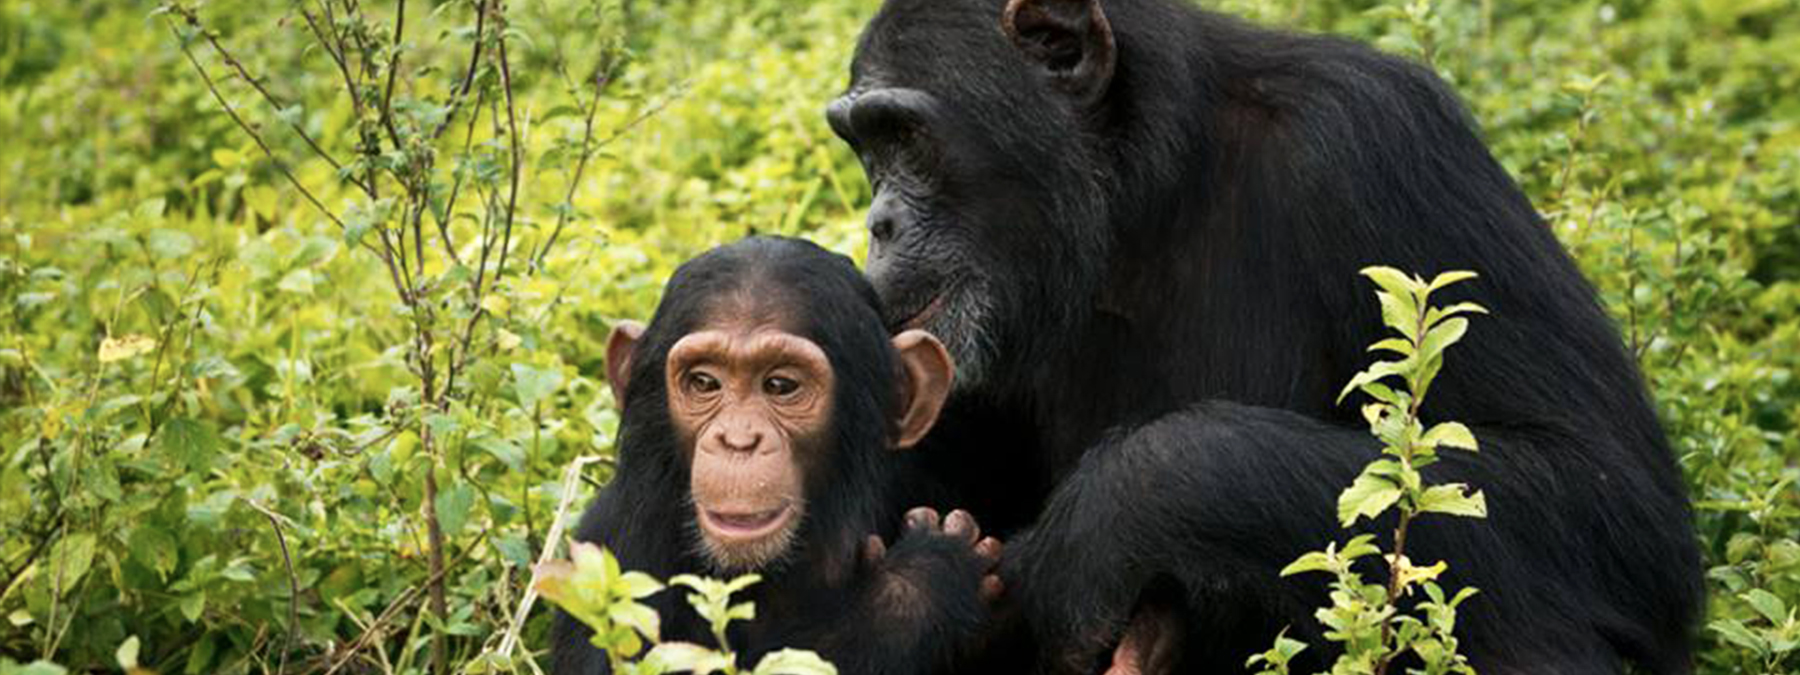 Be Friend A Chimpanzee in one Day